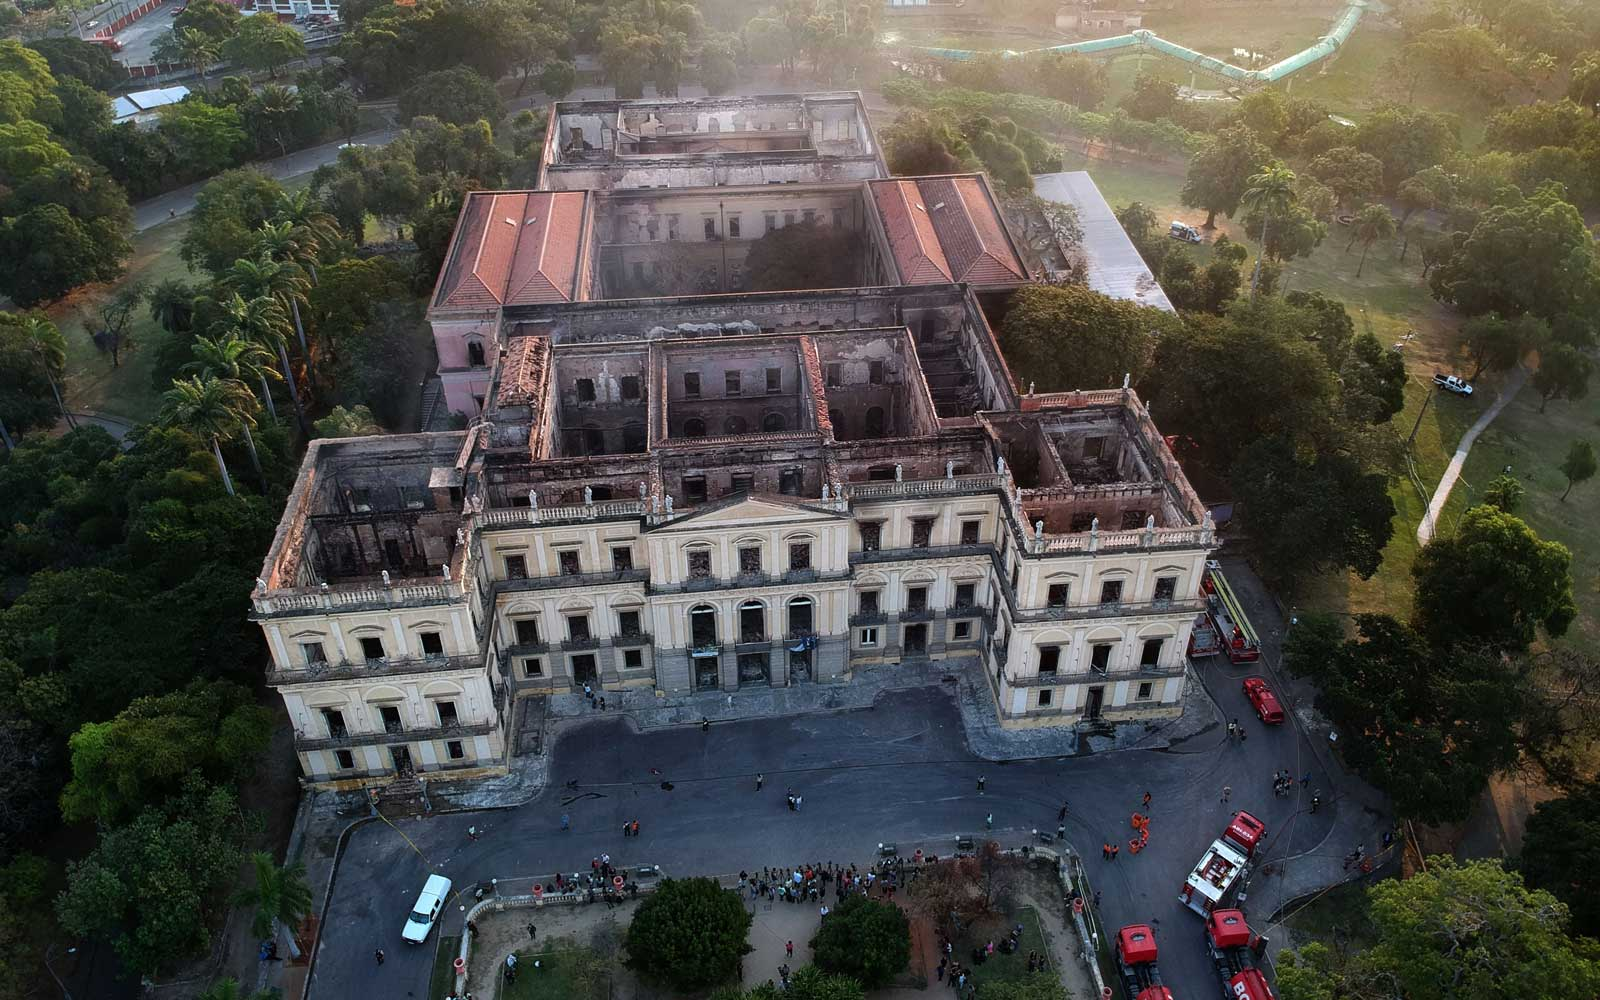 Brazil's National Museum Fire Potentially Destroyed Millions of Priceless Artifacts